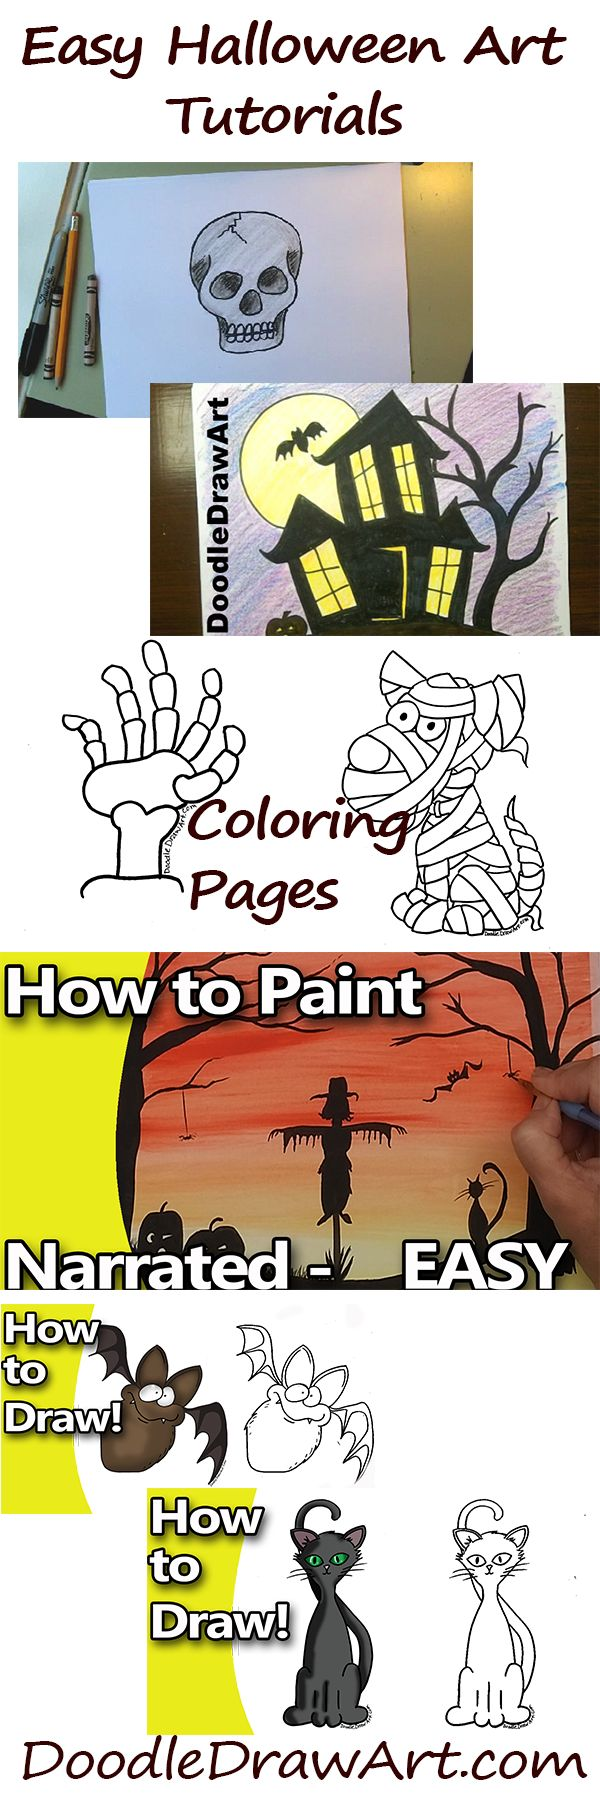 9 best how to draw videos images on pinterest easy drawings